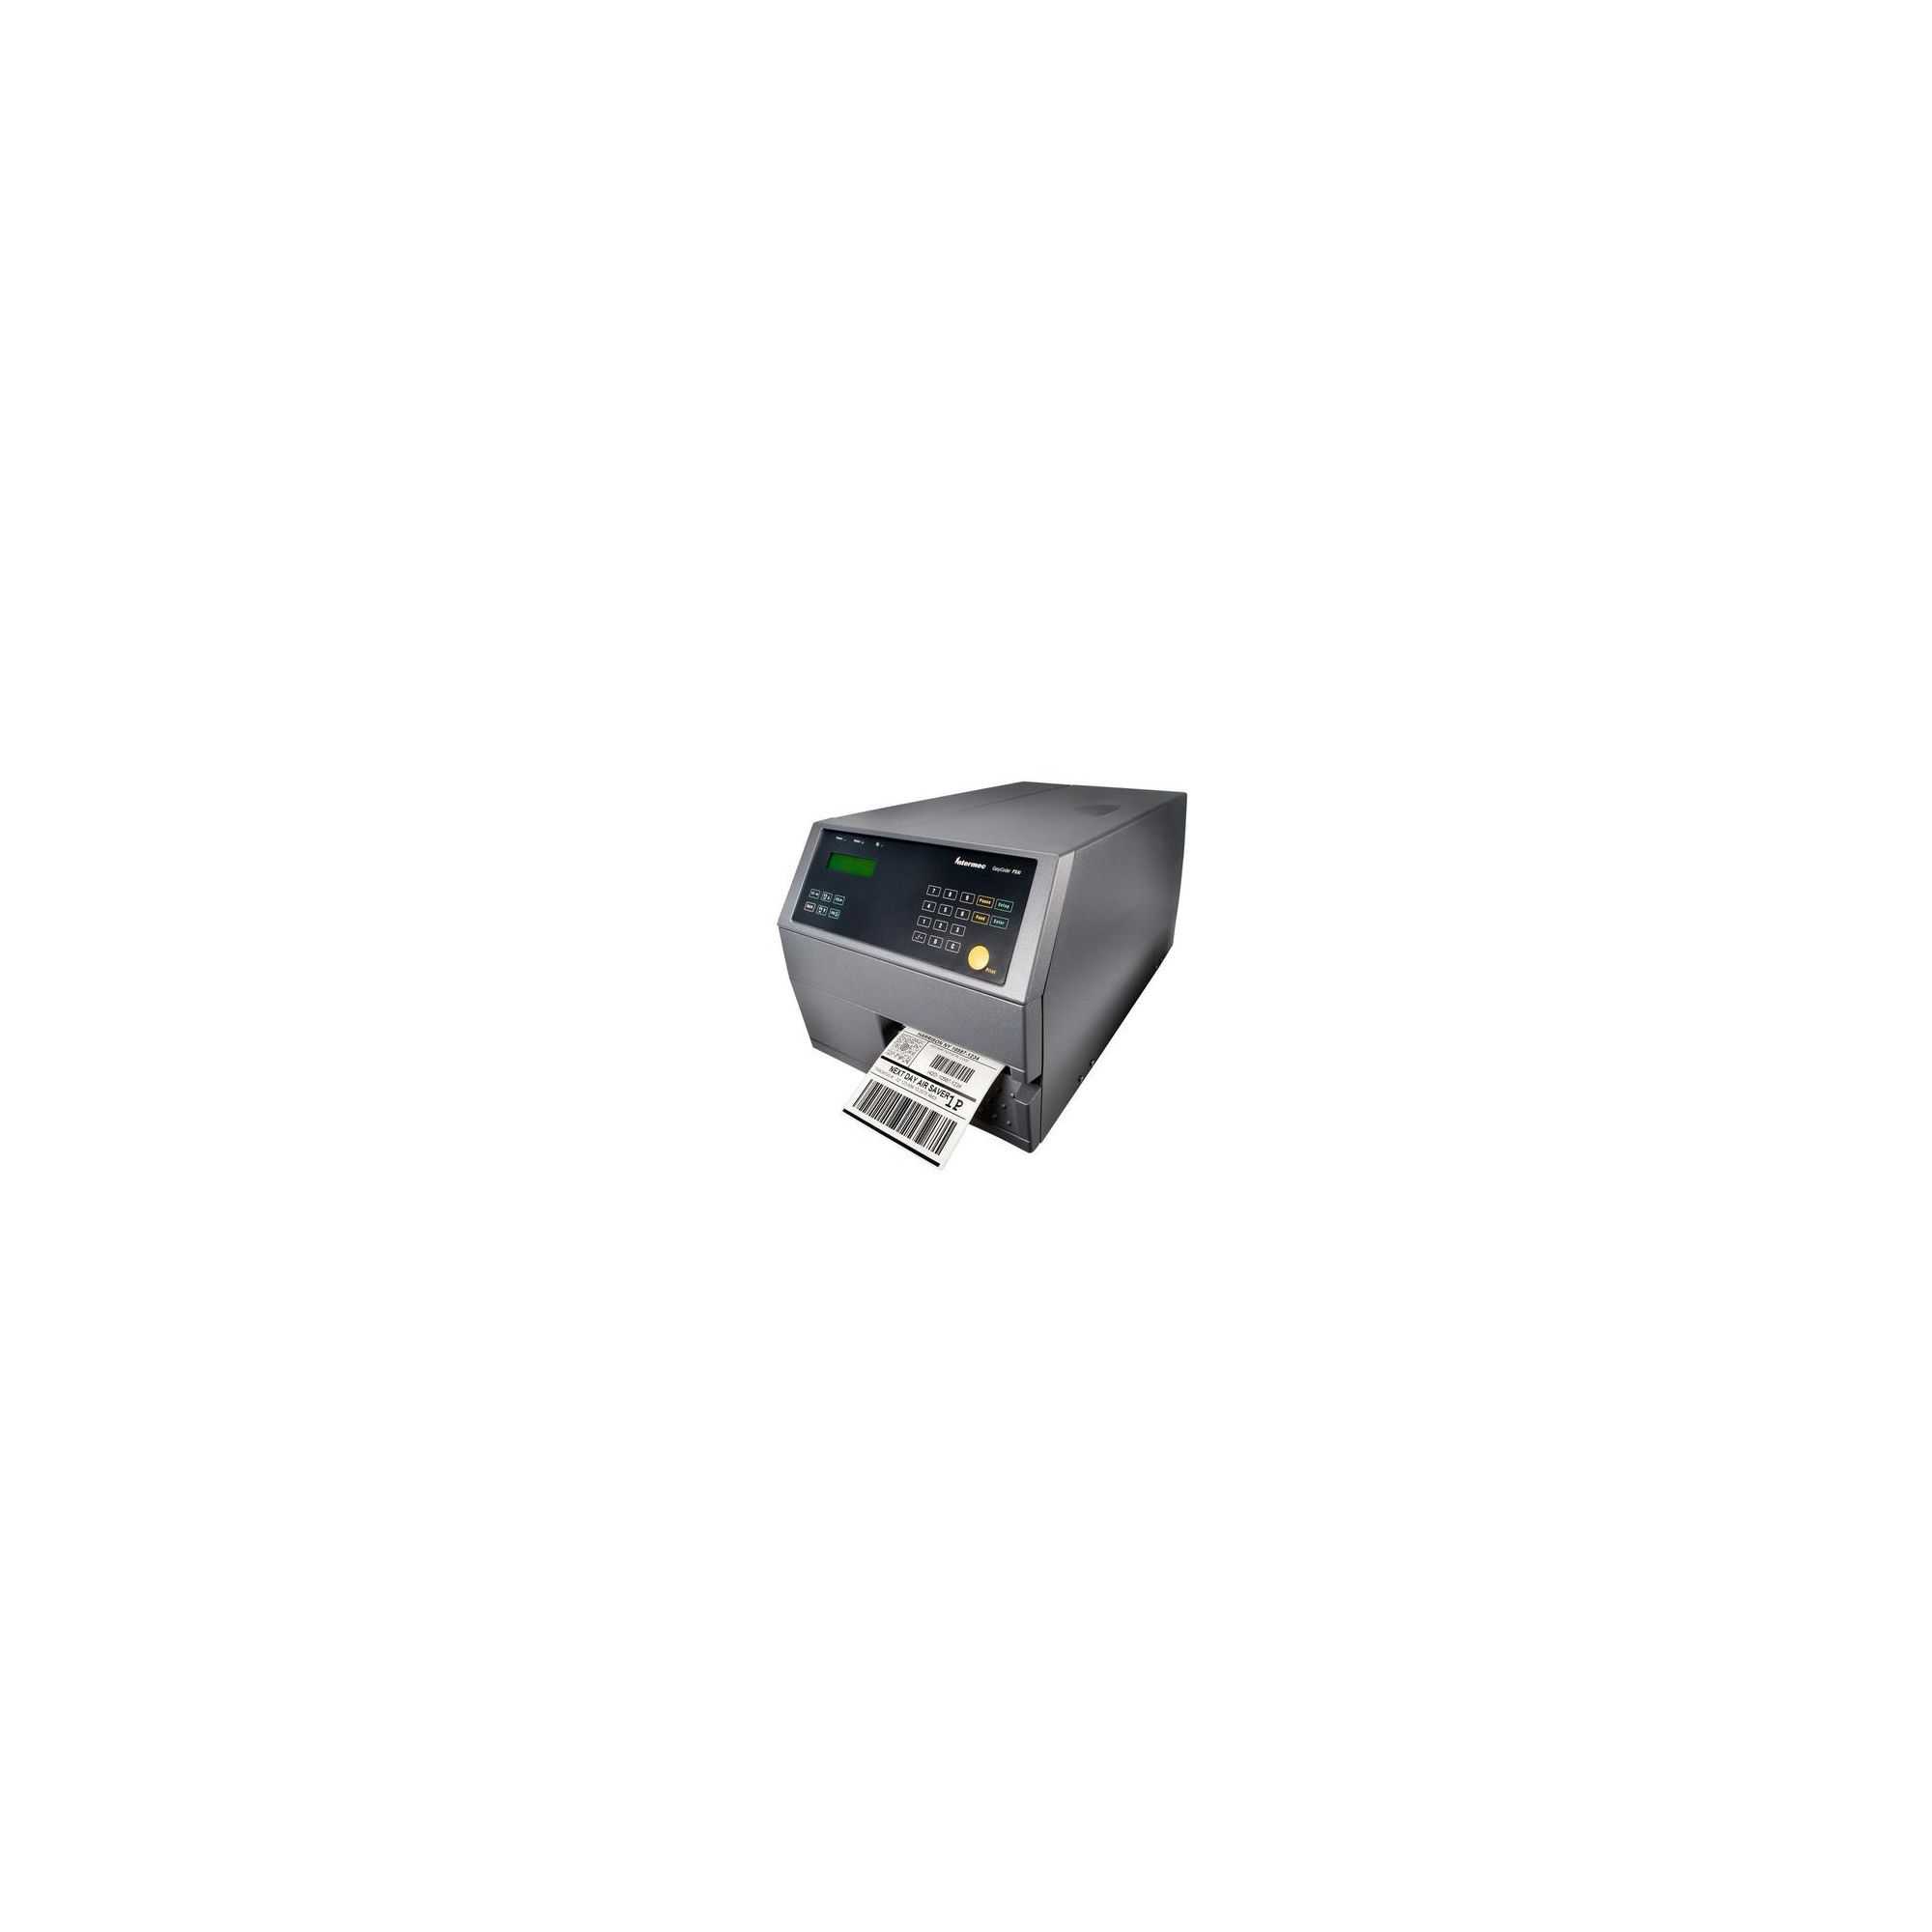 Intermec EasyCoder PM4i Barcode Label Printer at Tesco Direct